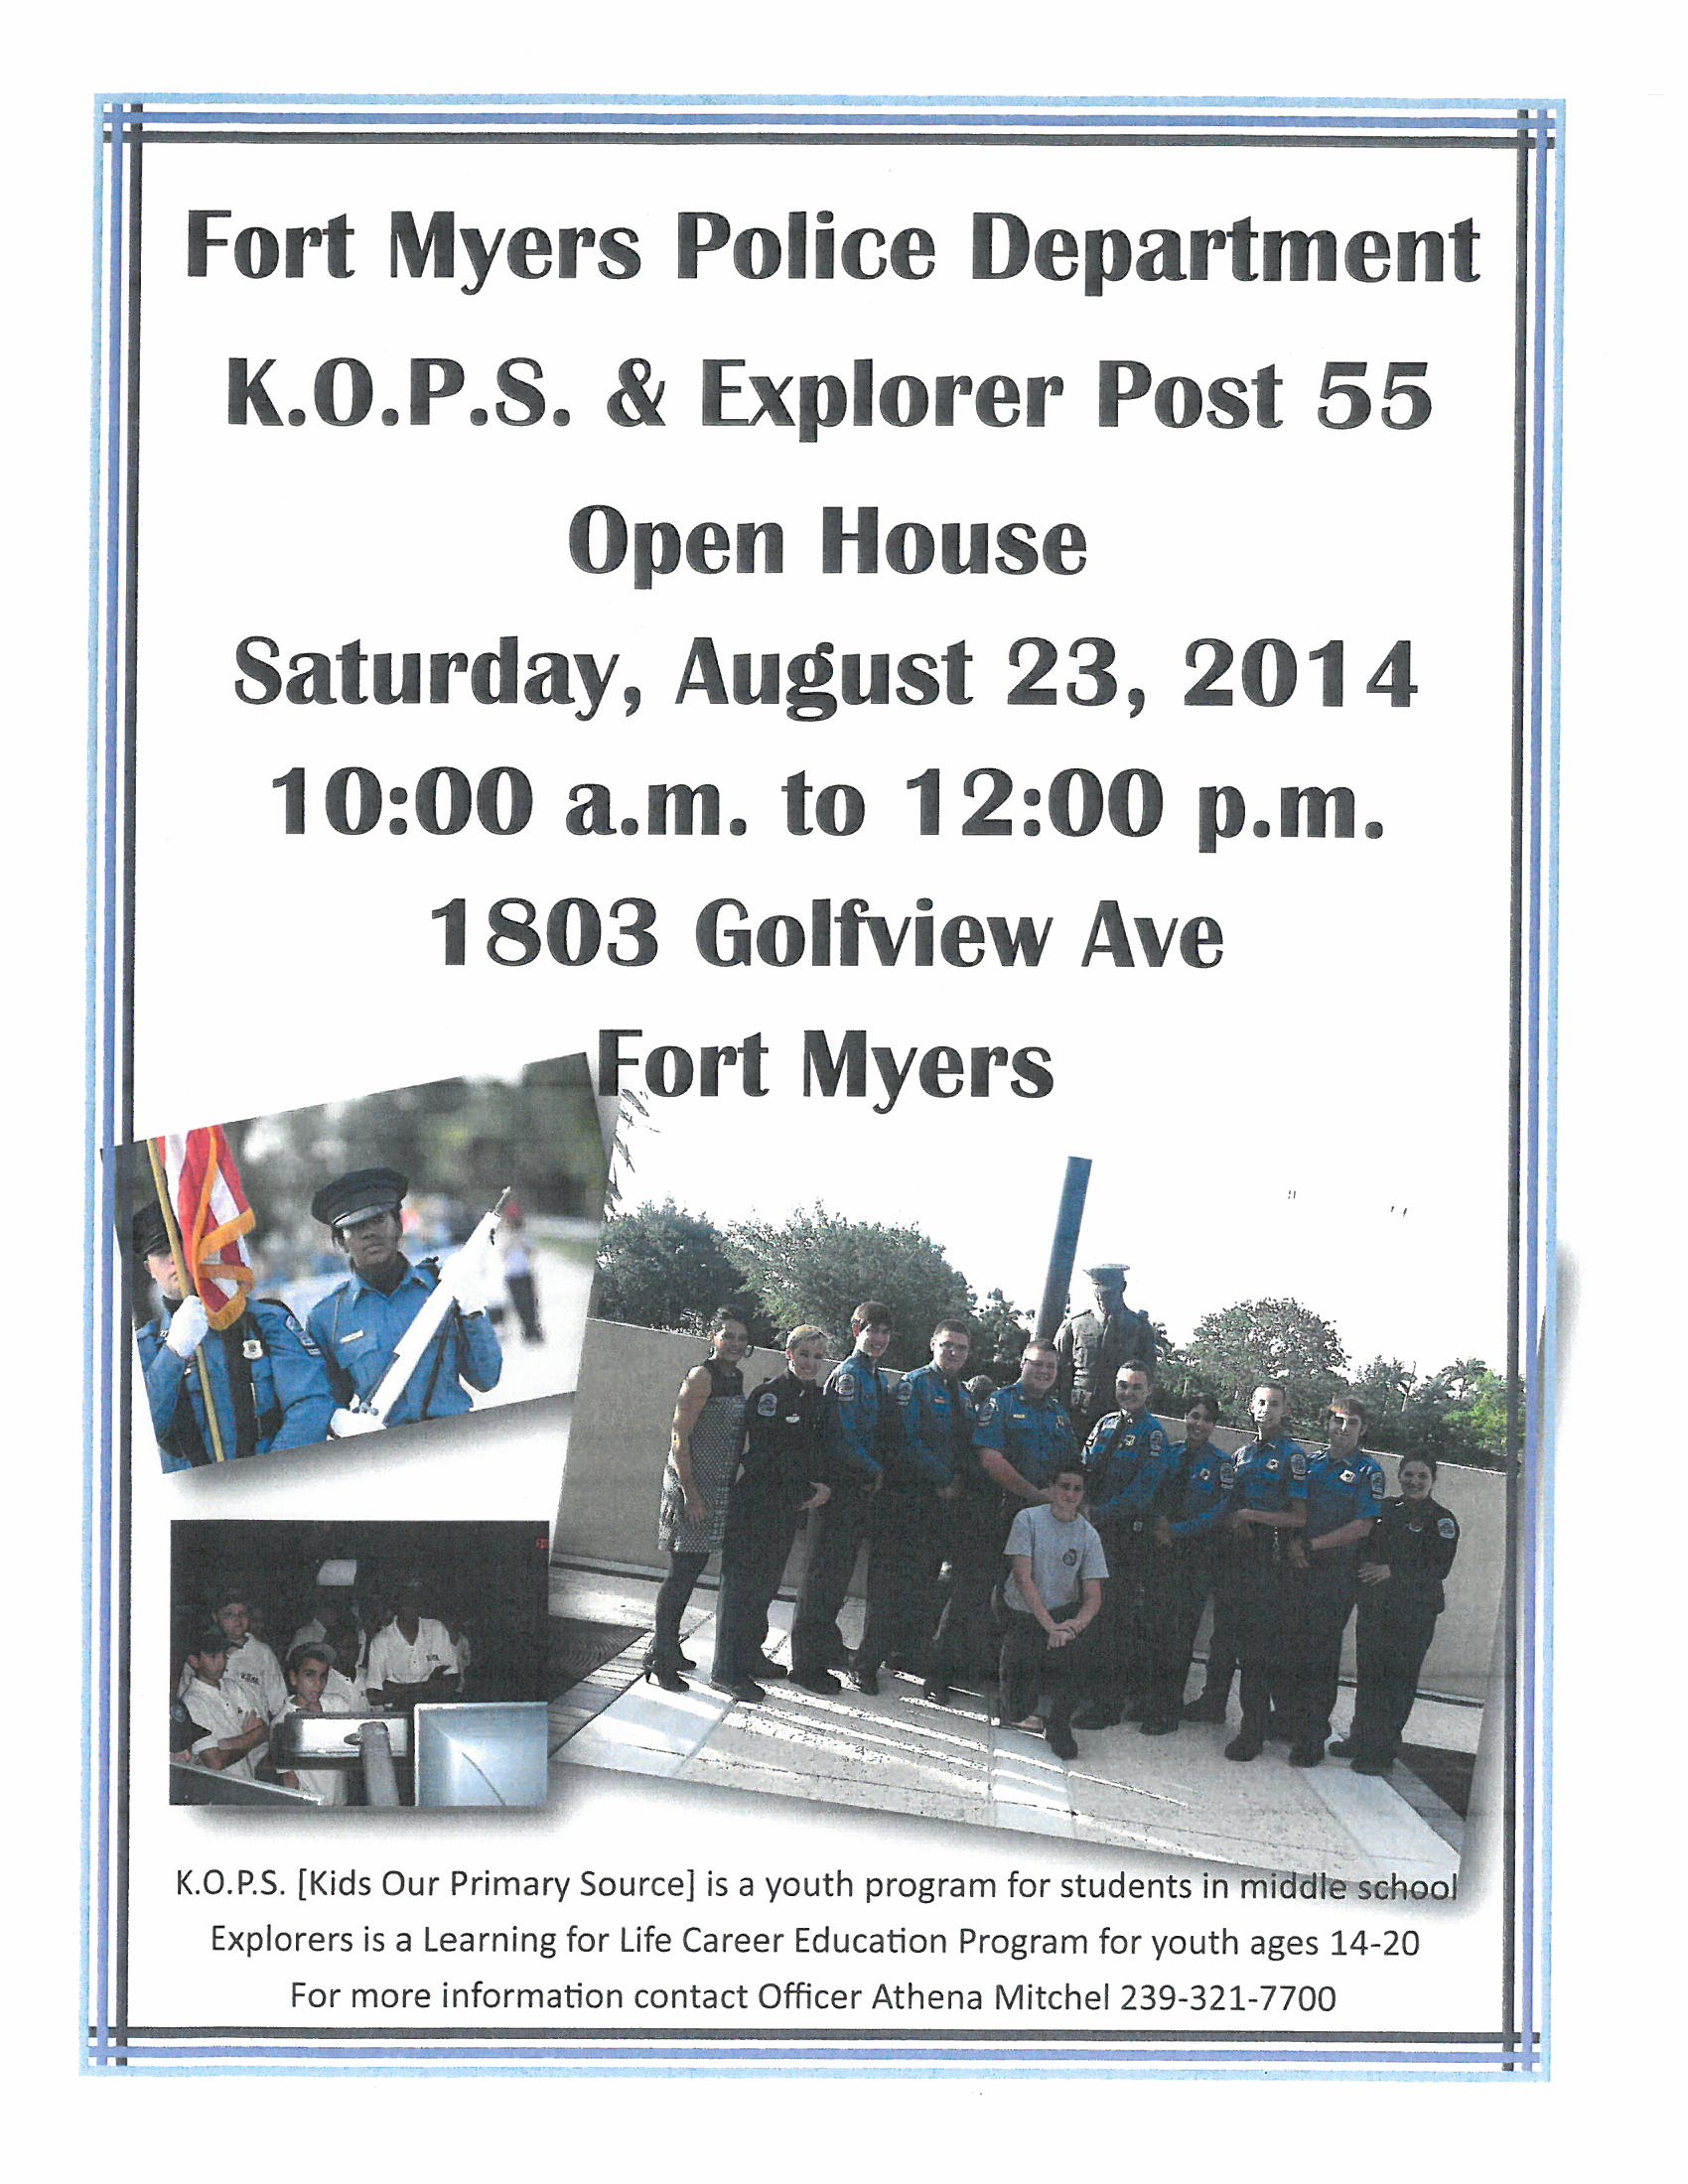 FMPD Hosts Open House for Youth Programs – Southwest Florida